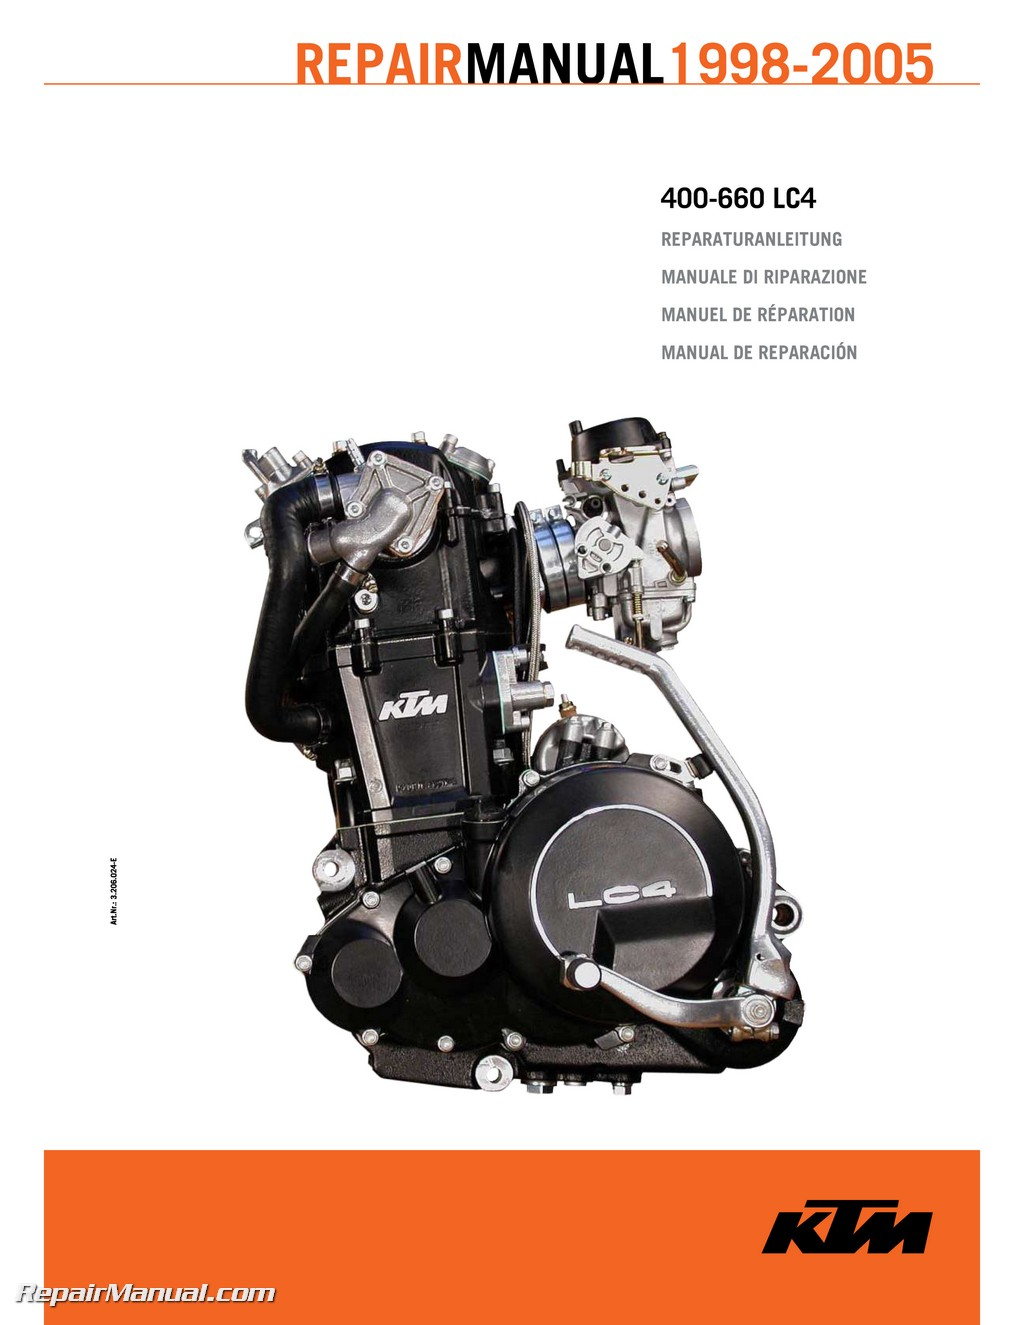 1998 2005 ktm 400 660 lc4 paper engine repair manual rh repairmanual com ktm lc4 620 workshop manual ktm lc4 repair manual download free